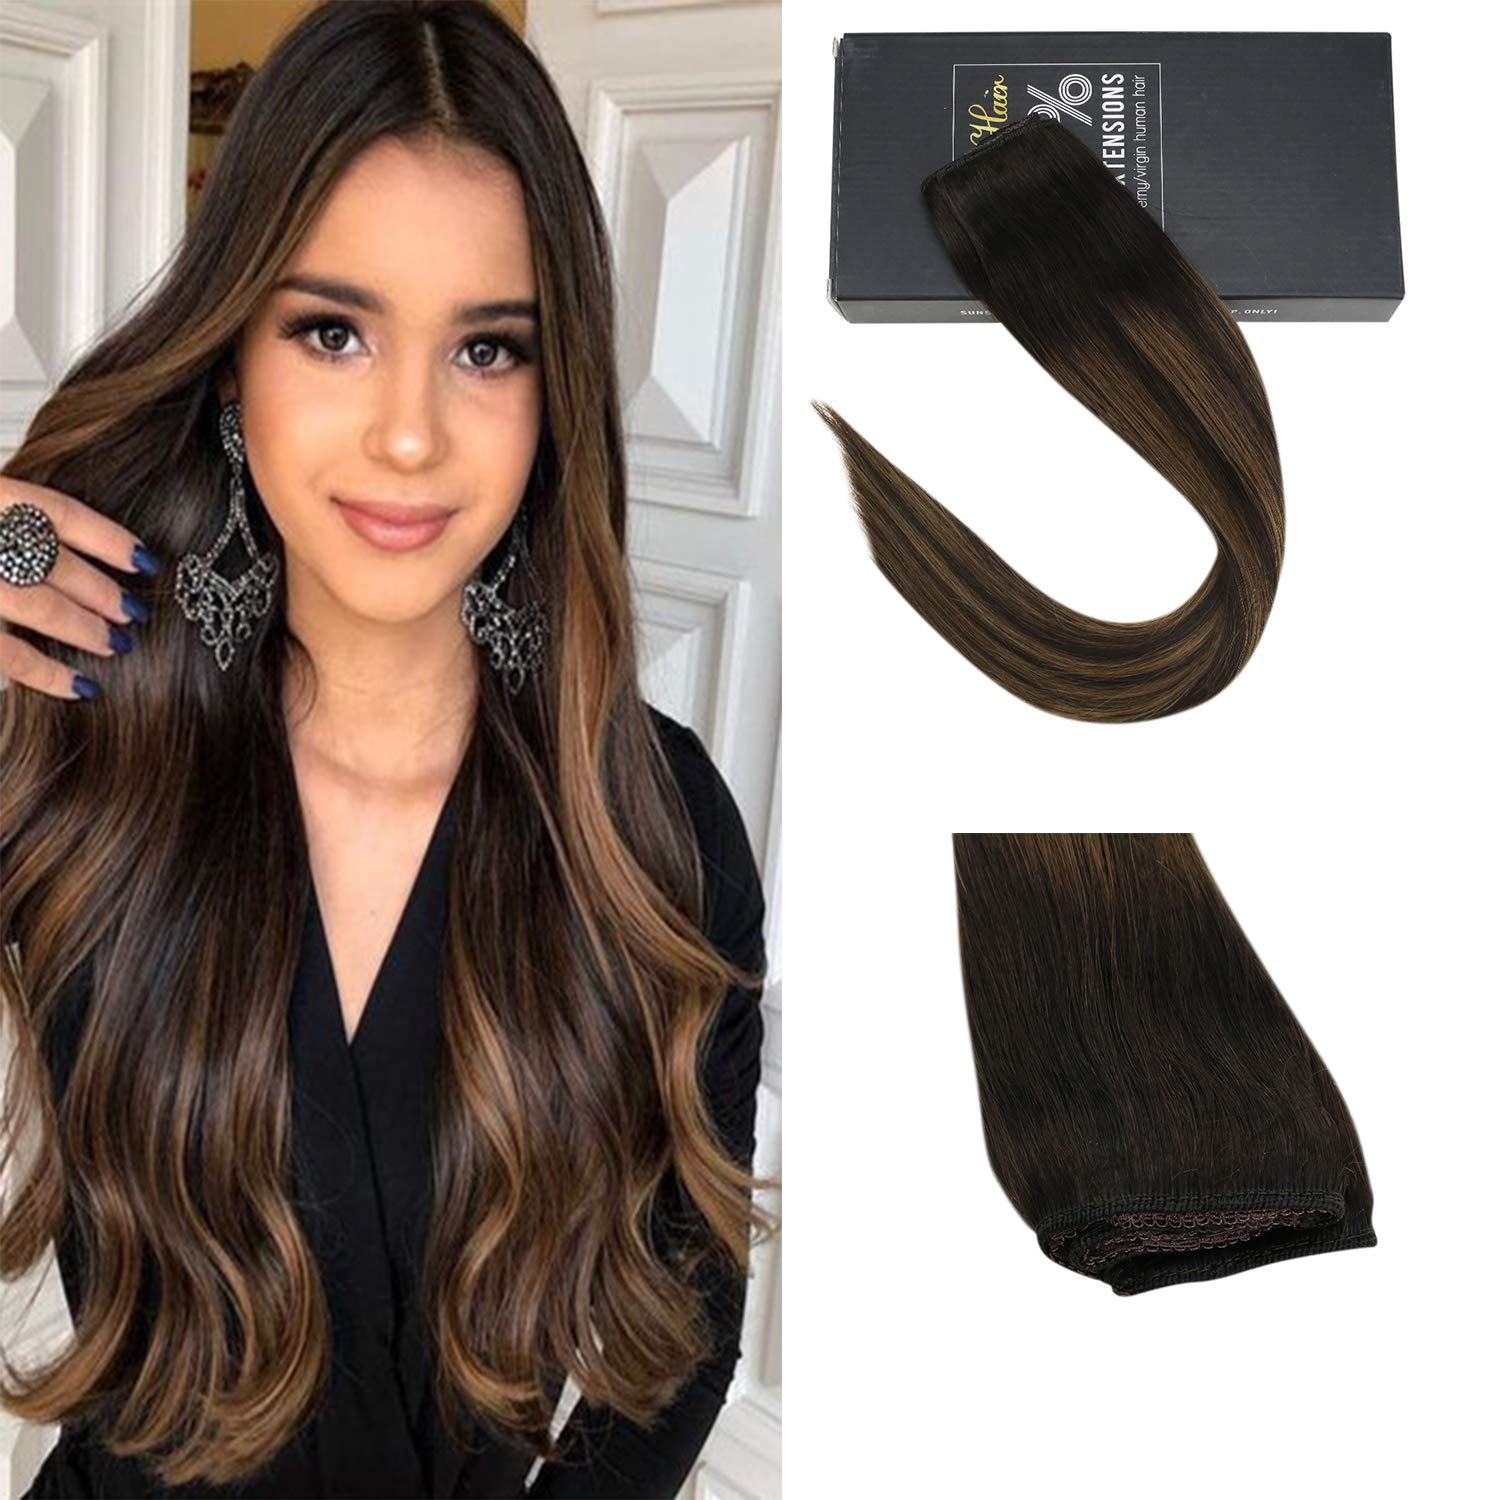 Sunny One Piece Clip in Human Hair Extensions 16 inch Clip in Hair Extensions Brown Balayage Remy Hair Clip in Darkest Brown Mixed